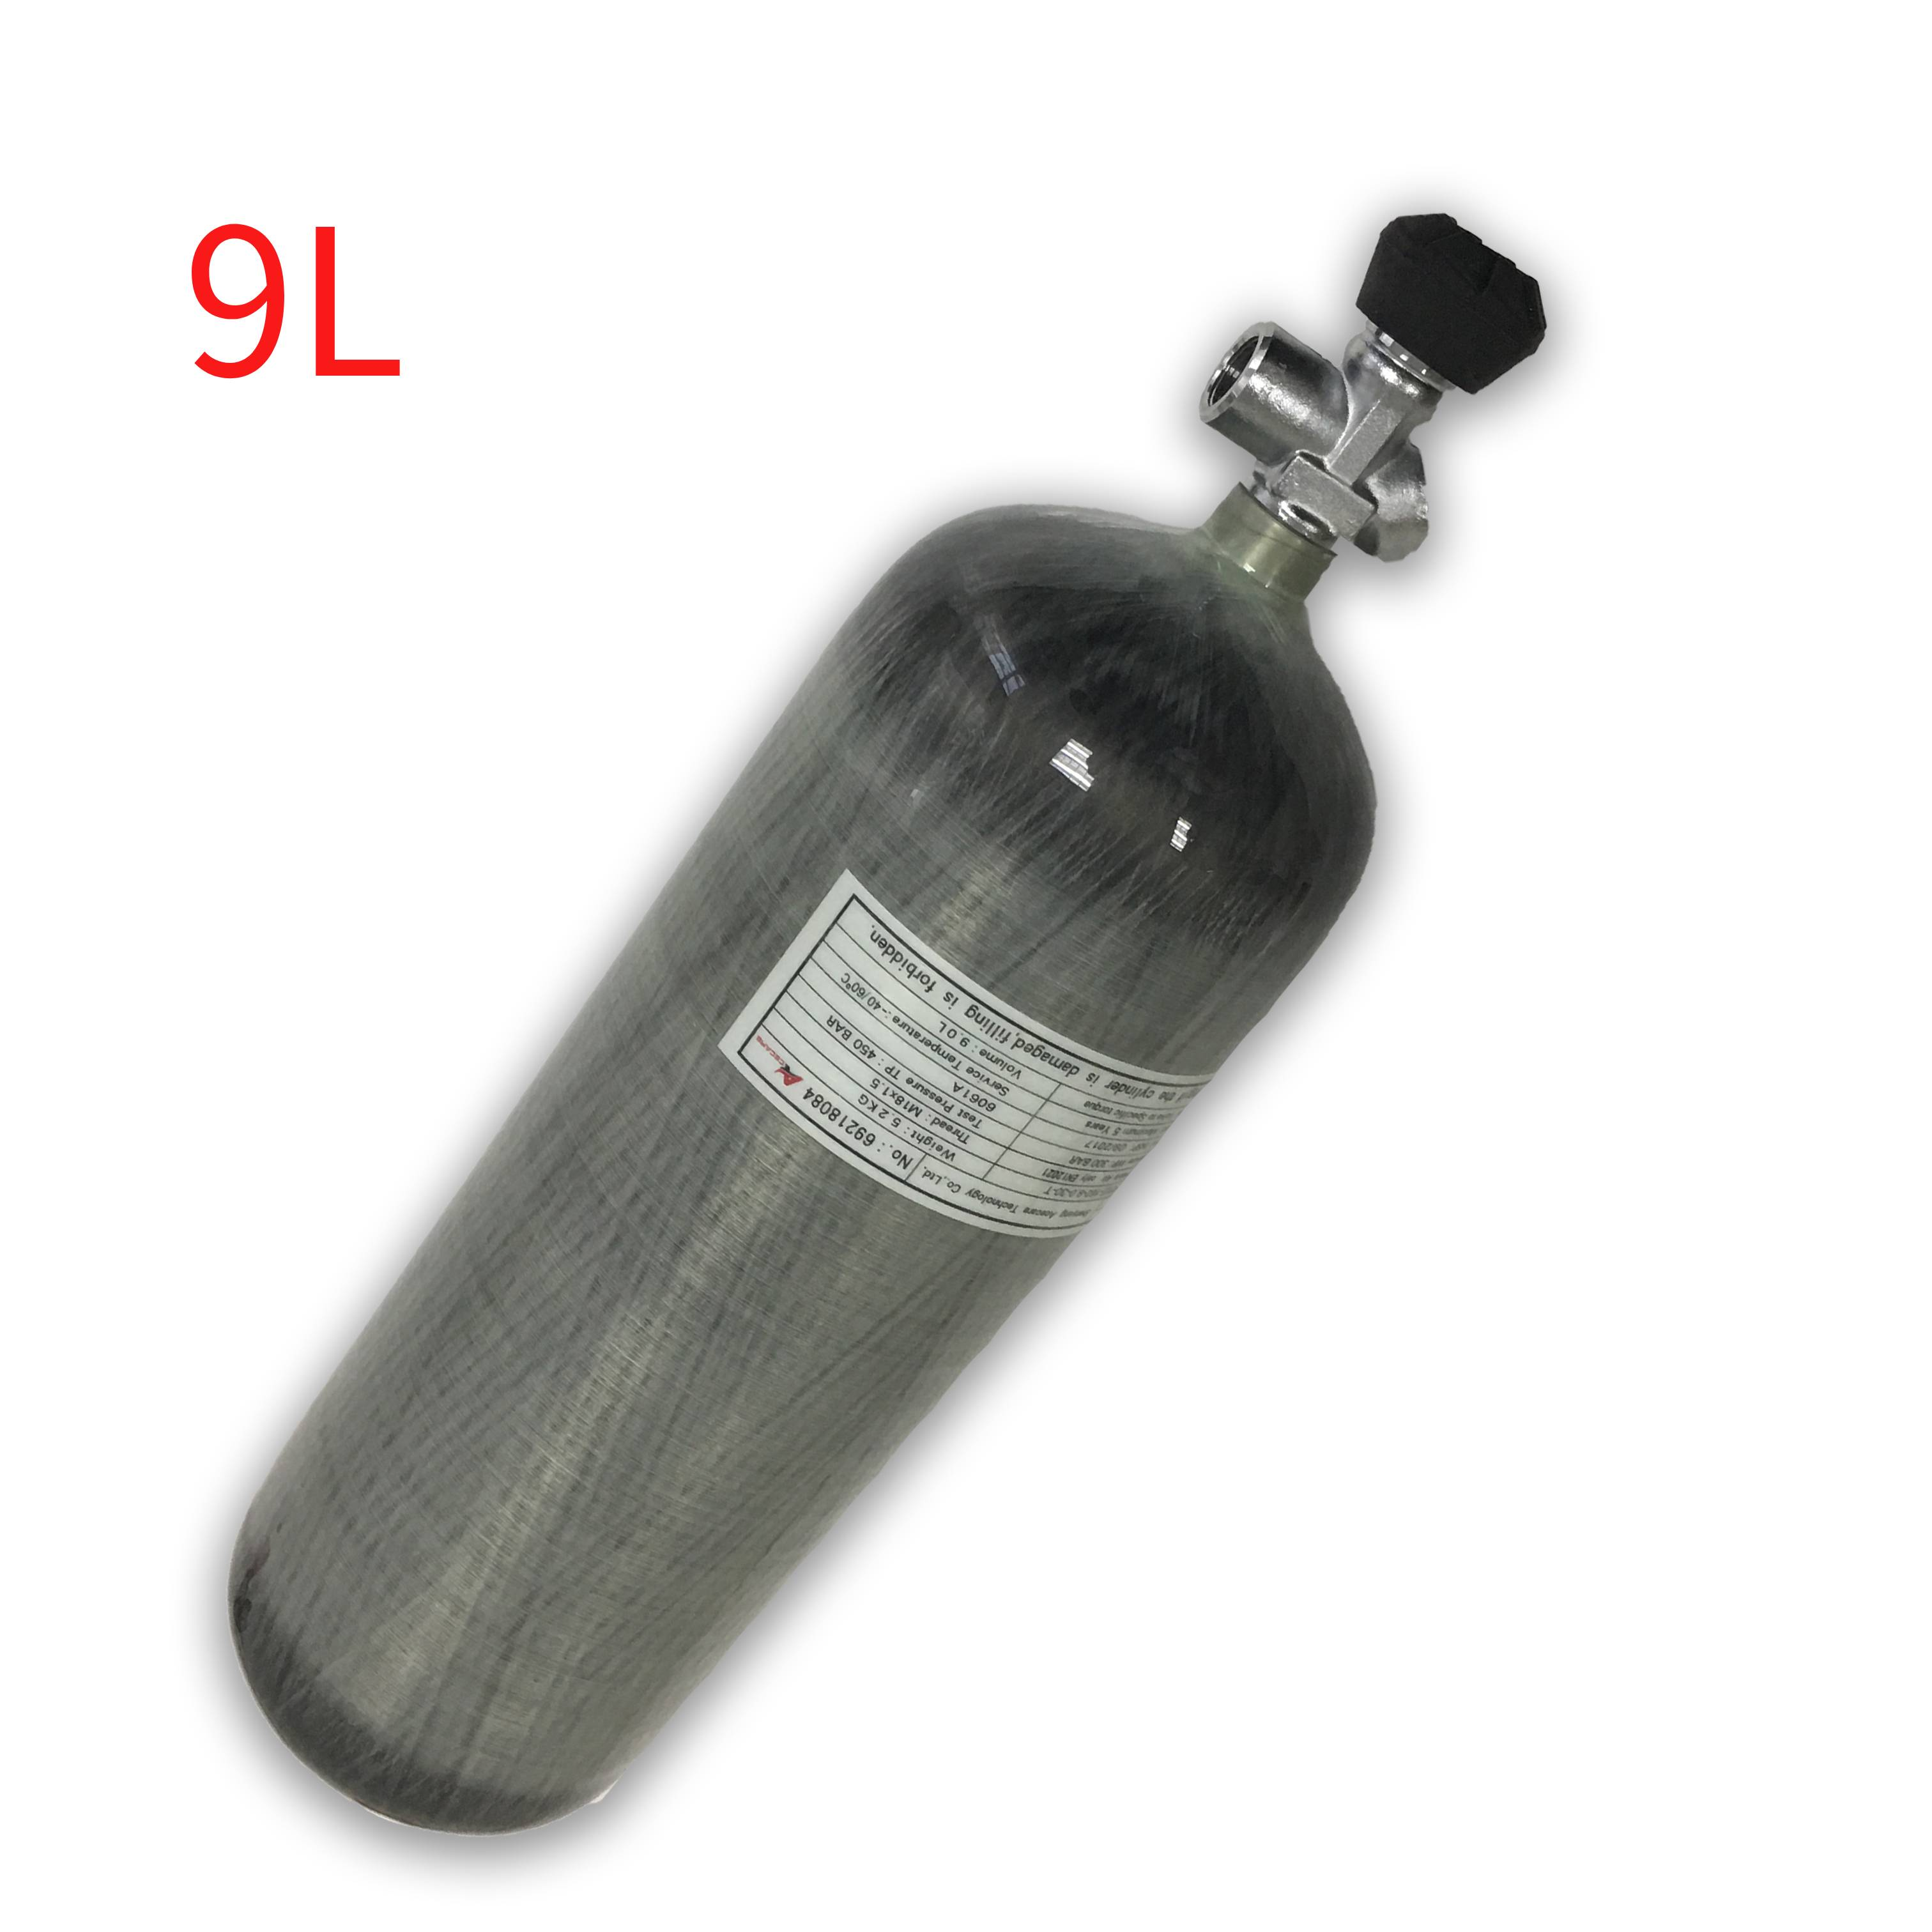 AC1090 Hpa Compressed Hunt Scuba Pcp Bottle Air Paintball Co2 4500psi Underwater Gun 300bar Breathing Apparatus Diving Cylinder